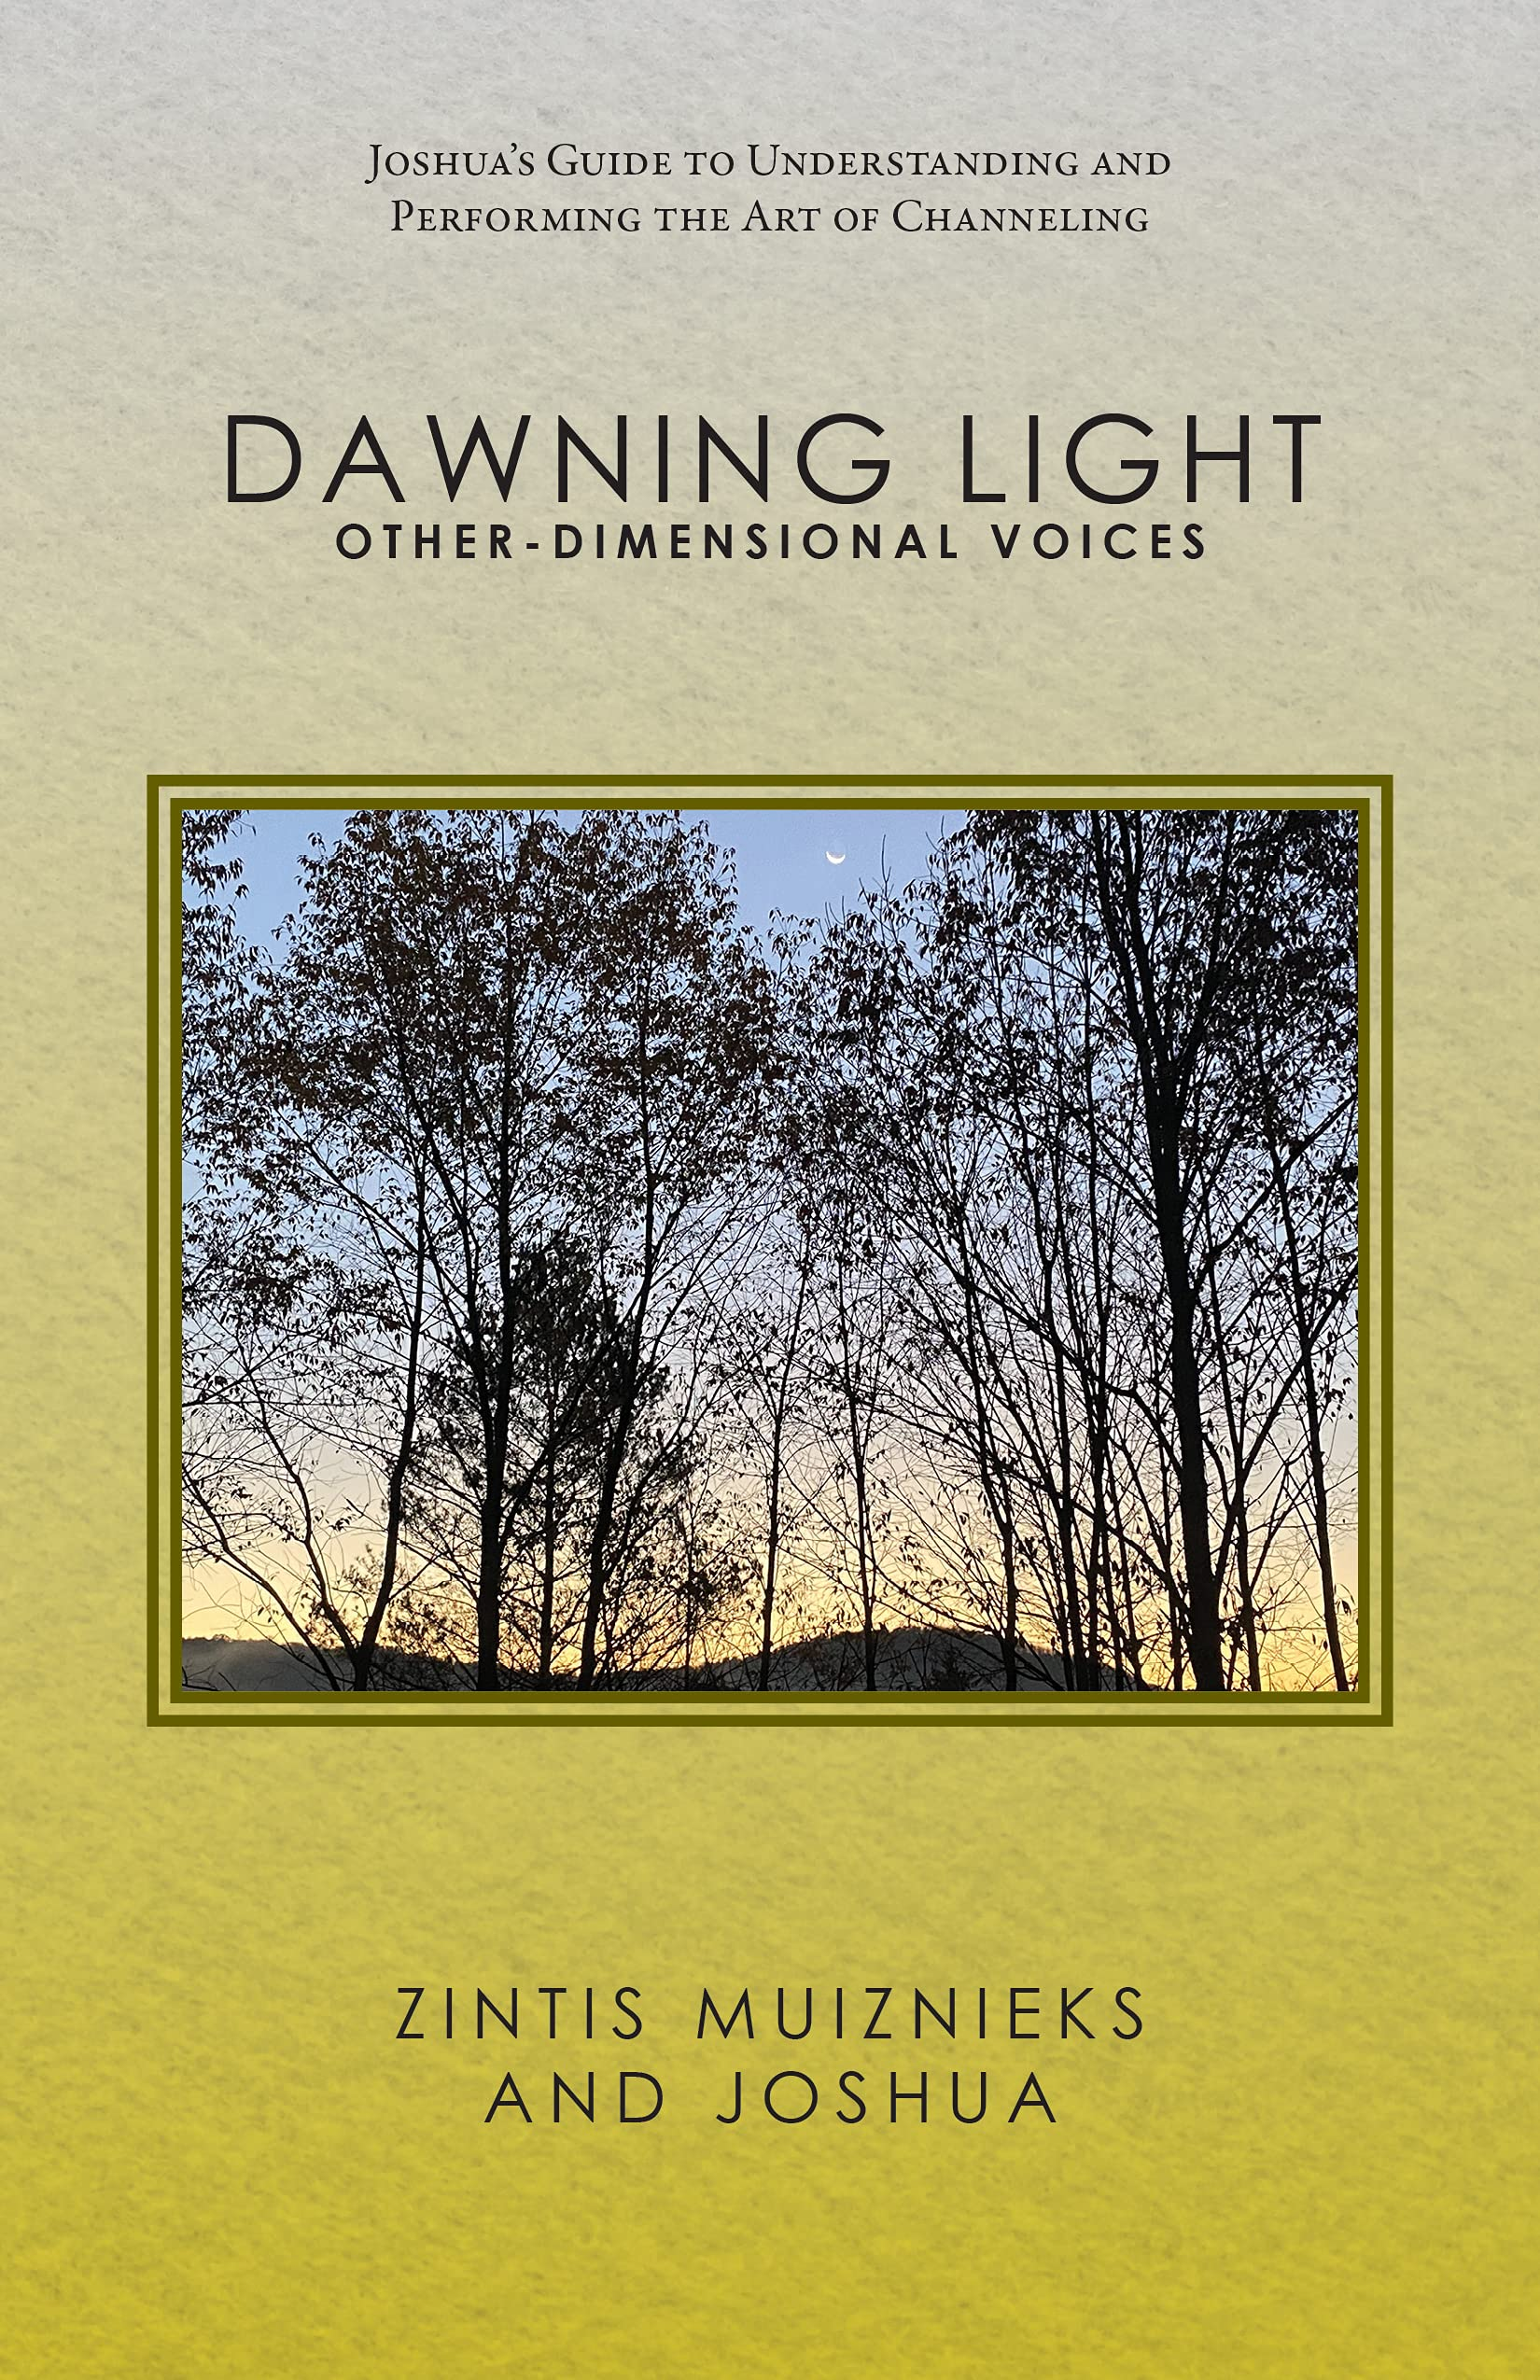 Dawning Light: Other-dimensional Voices: Joshua's Guide to Understanding and Performing the Art of Channeling